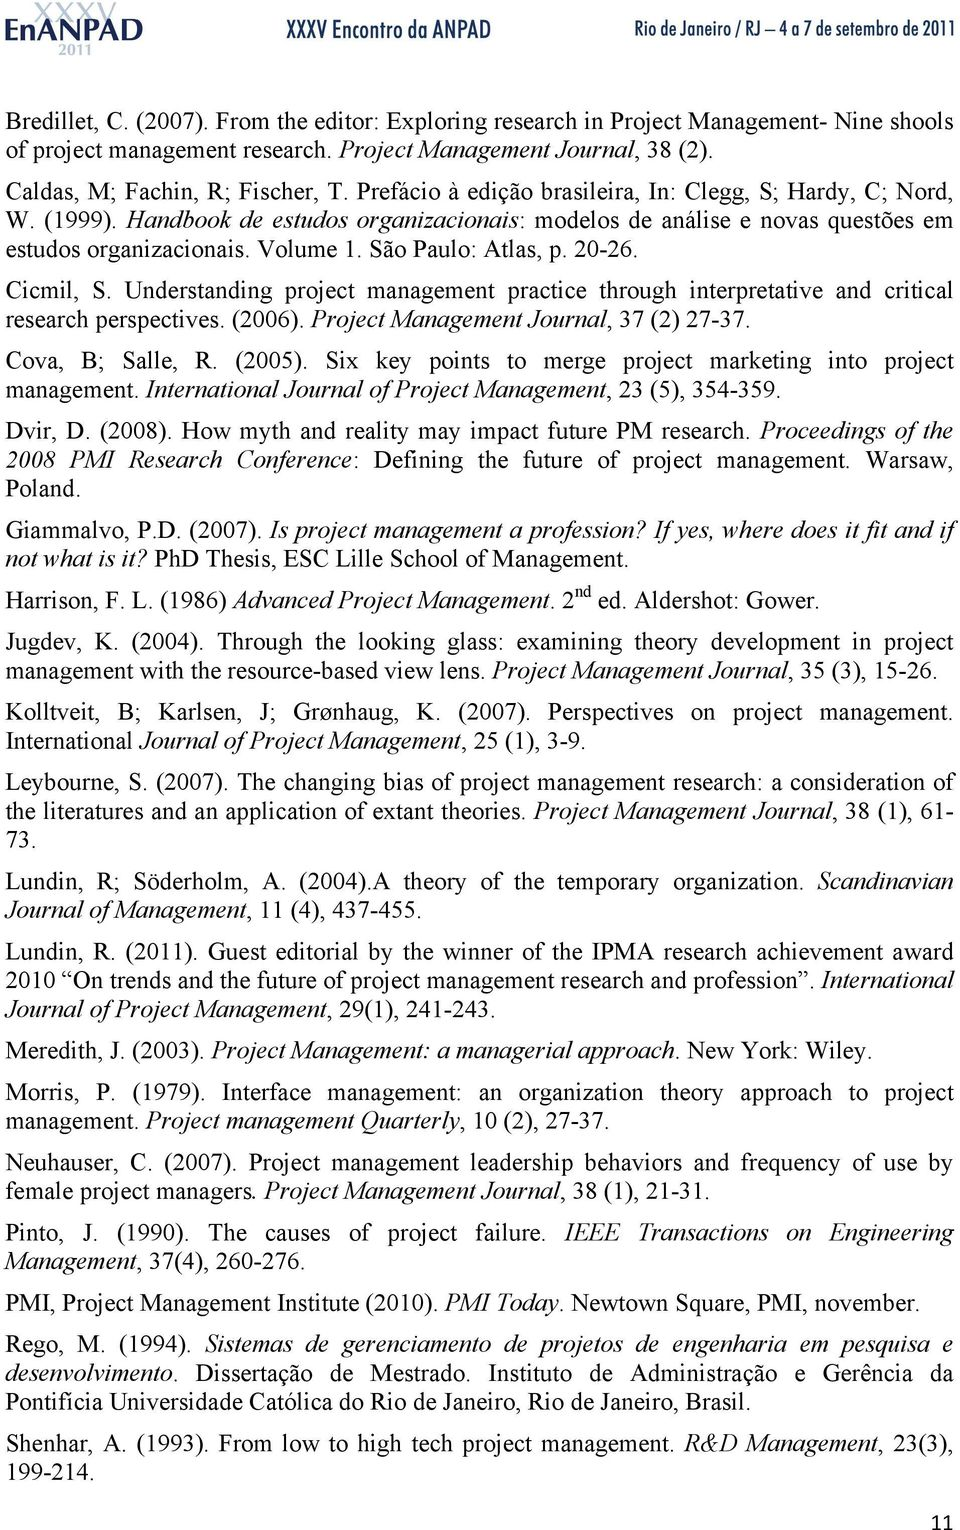 São Paulo: Atlas, p. 20-26. Cicmil, S. Understanding project management practice through interpretative and critical research perspectives. (2006). Project Management Journal, 37 (2) 27-37.